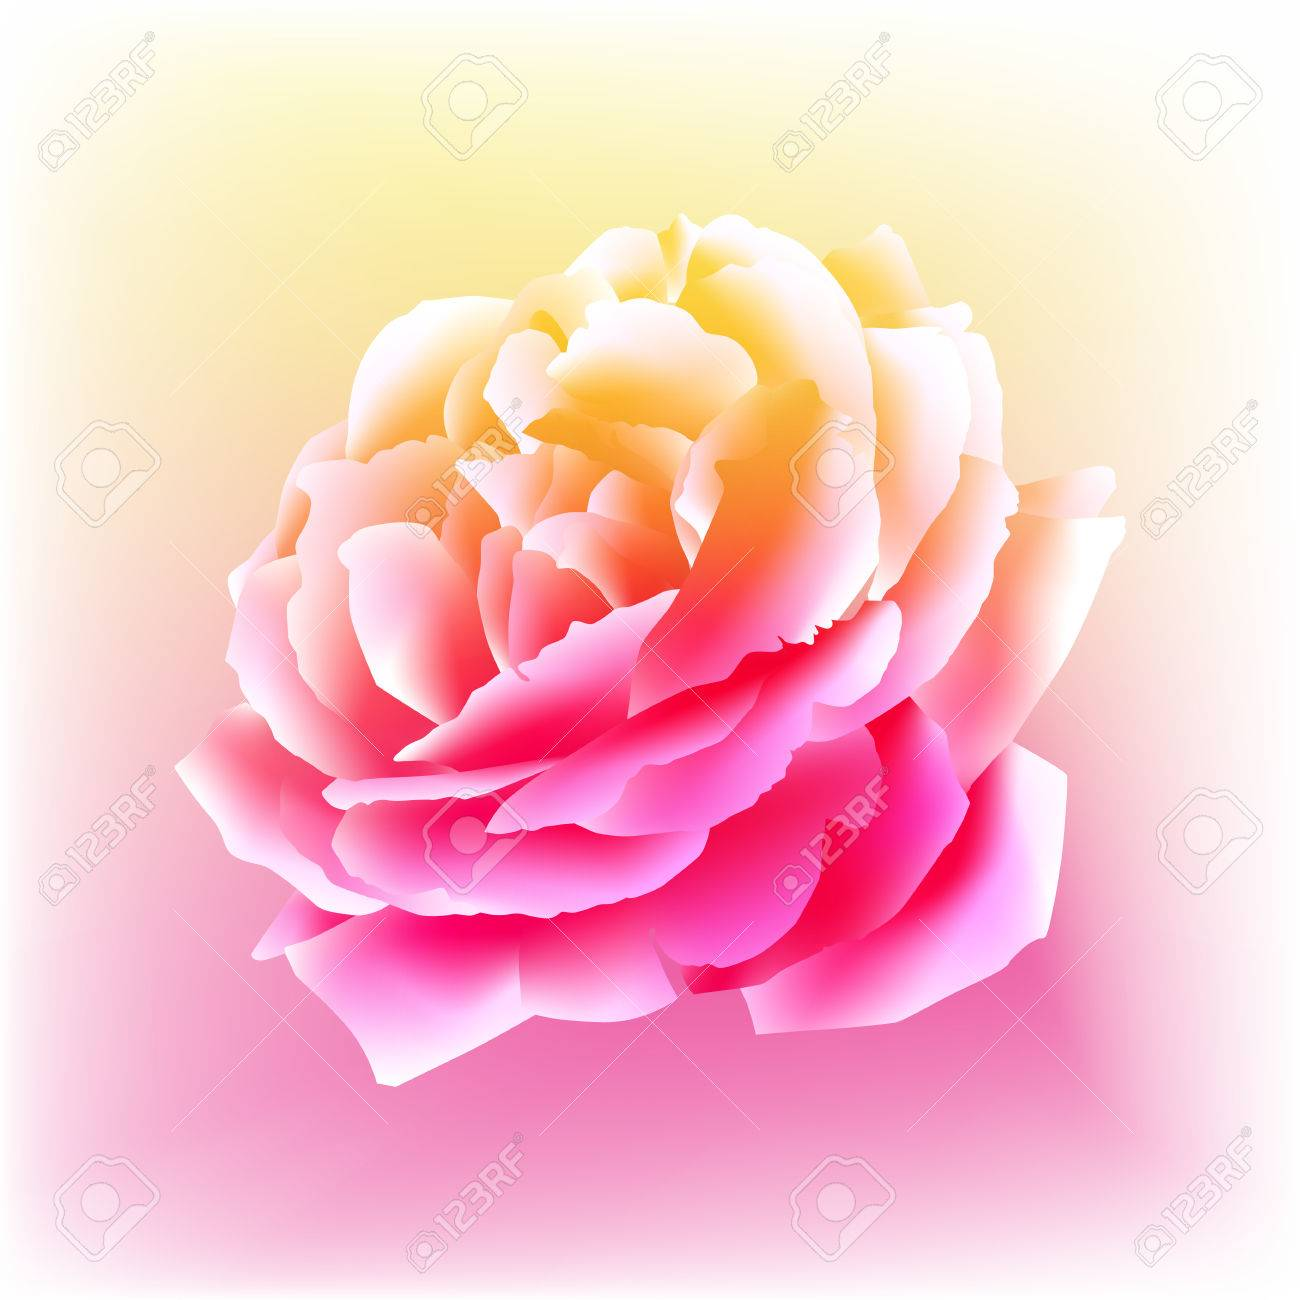 An image of a rose bloom in a watercolor paint style. Stock Vector - 9036799